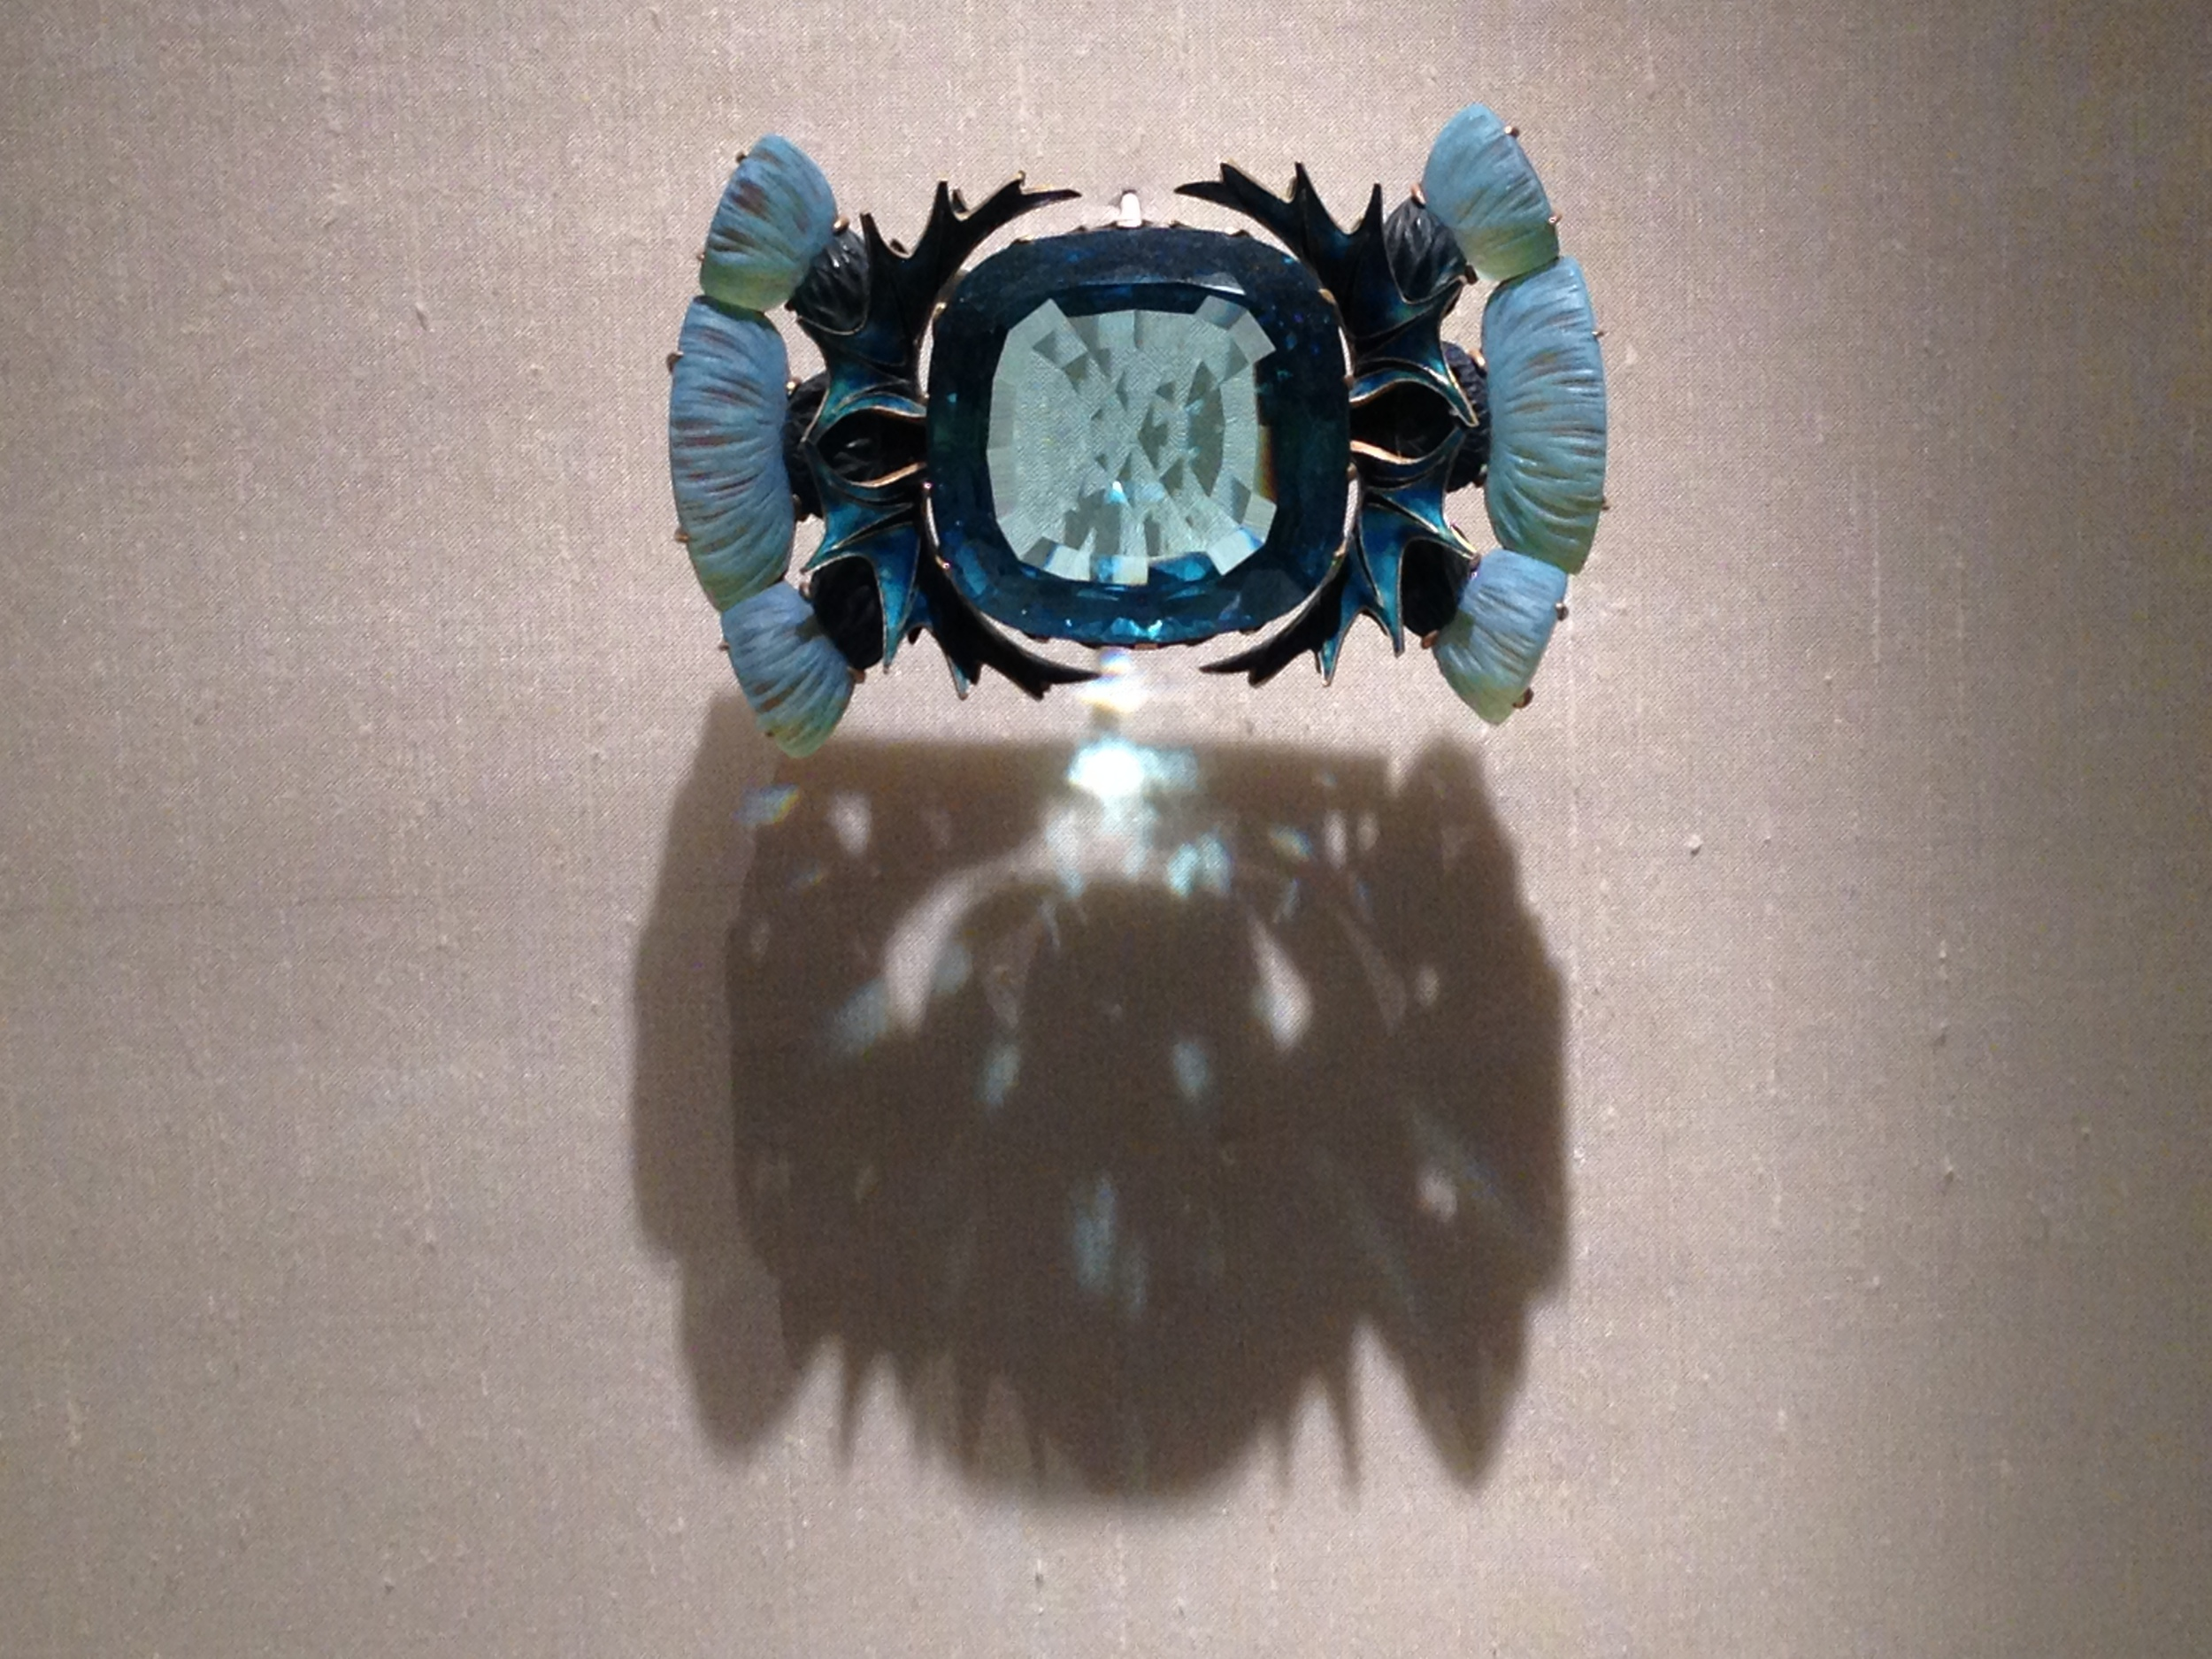 "Rene Lalique ""Aquamarine and Thistle Flowers"" brooch c 1905-1906 Gold, aquamarine, glass and enamel"